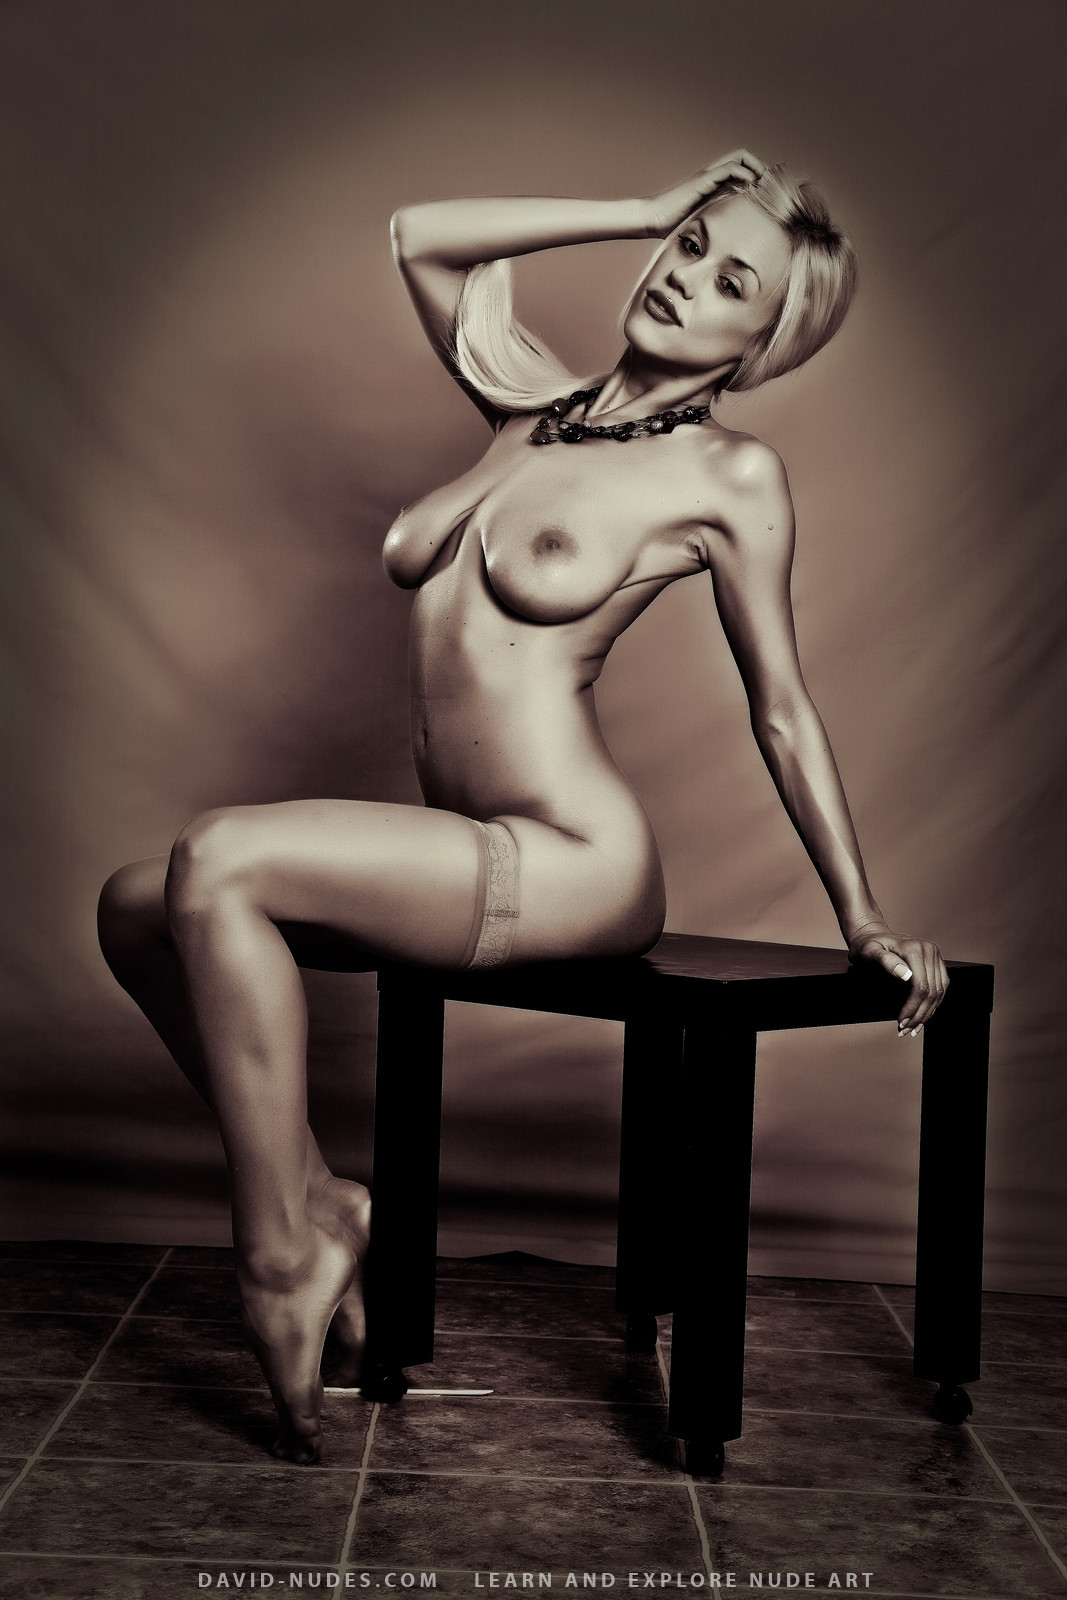 nude and crude pictures jpg 853x1280